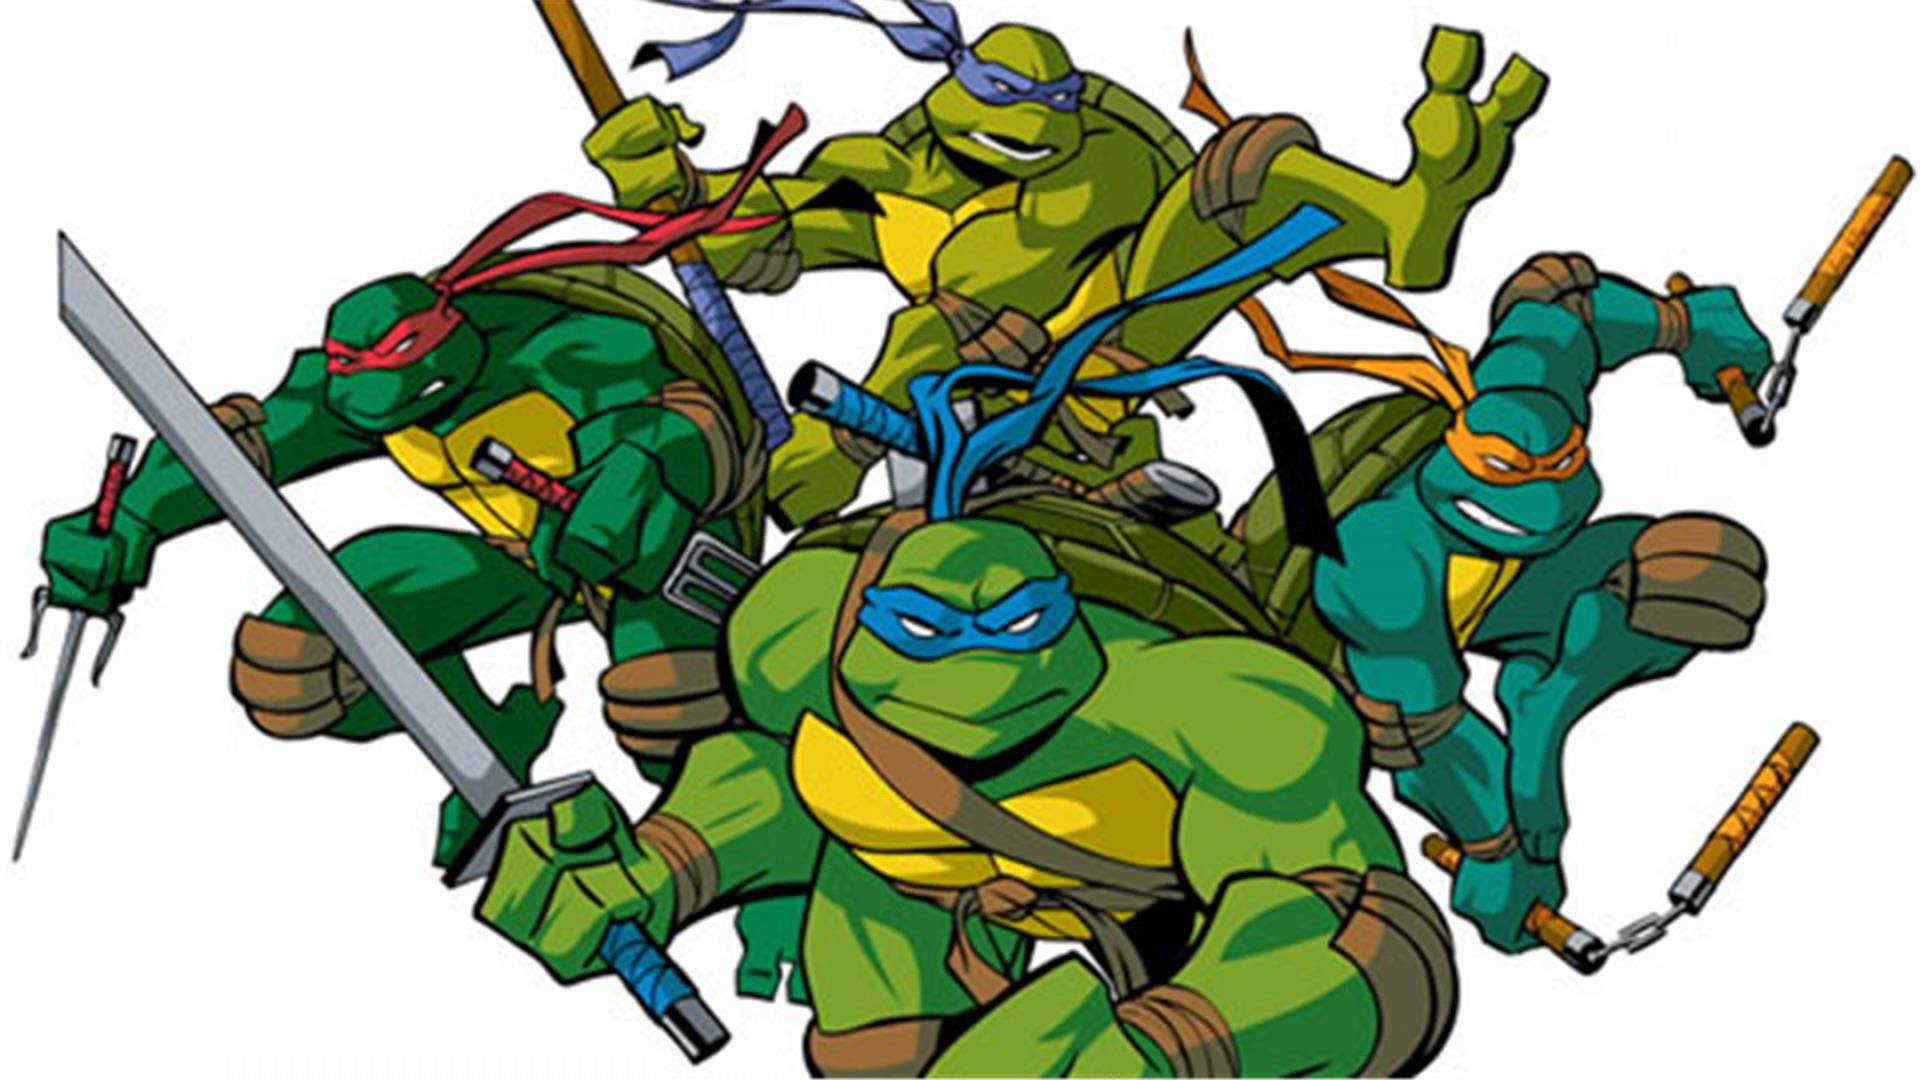 Teenage mutant ninja turtles fondos de pantalla hd